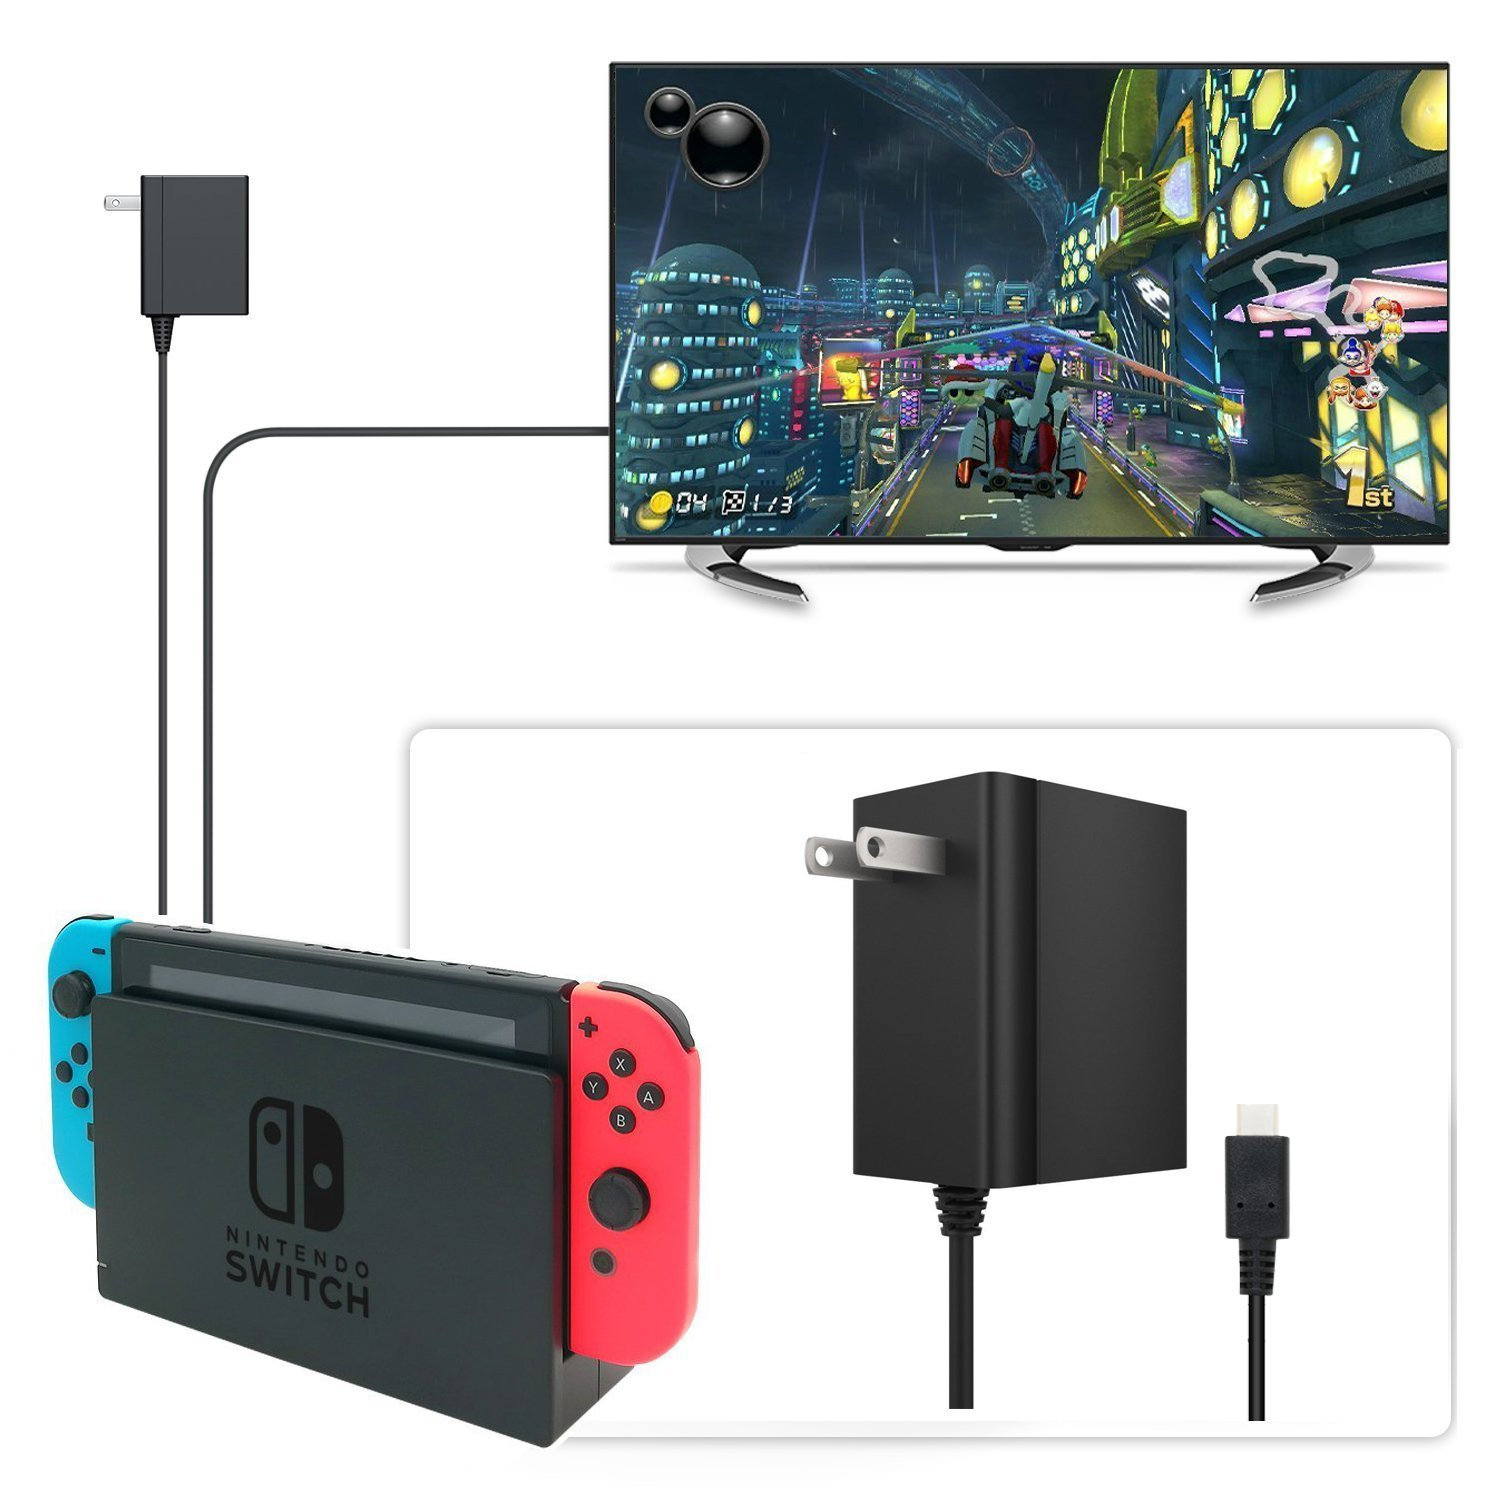 Nintendo Switch Charger AC Adapter Hopze Nintendo Switch Charger with 5 FT Power Supply Cord and Type C Fast Charging kit - 15V 2.6A AC Adapter for Nintendo Switch Supports TV Mode and Dock Station by Hopze (Image #4)